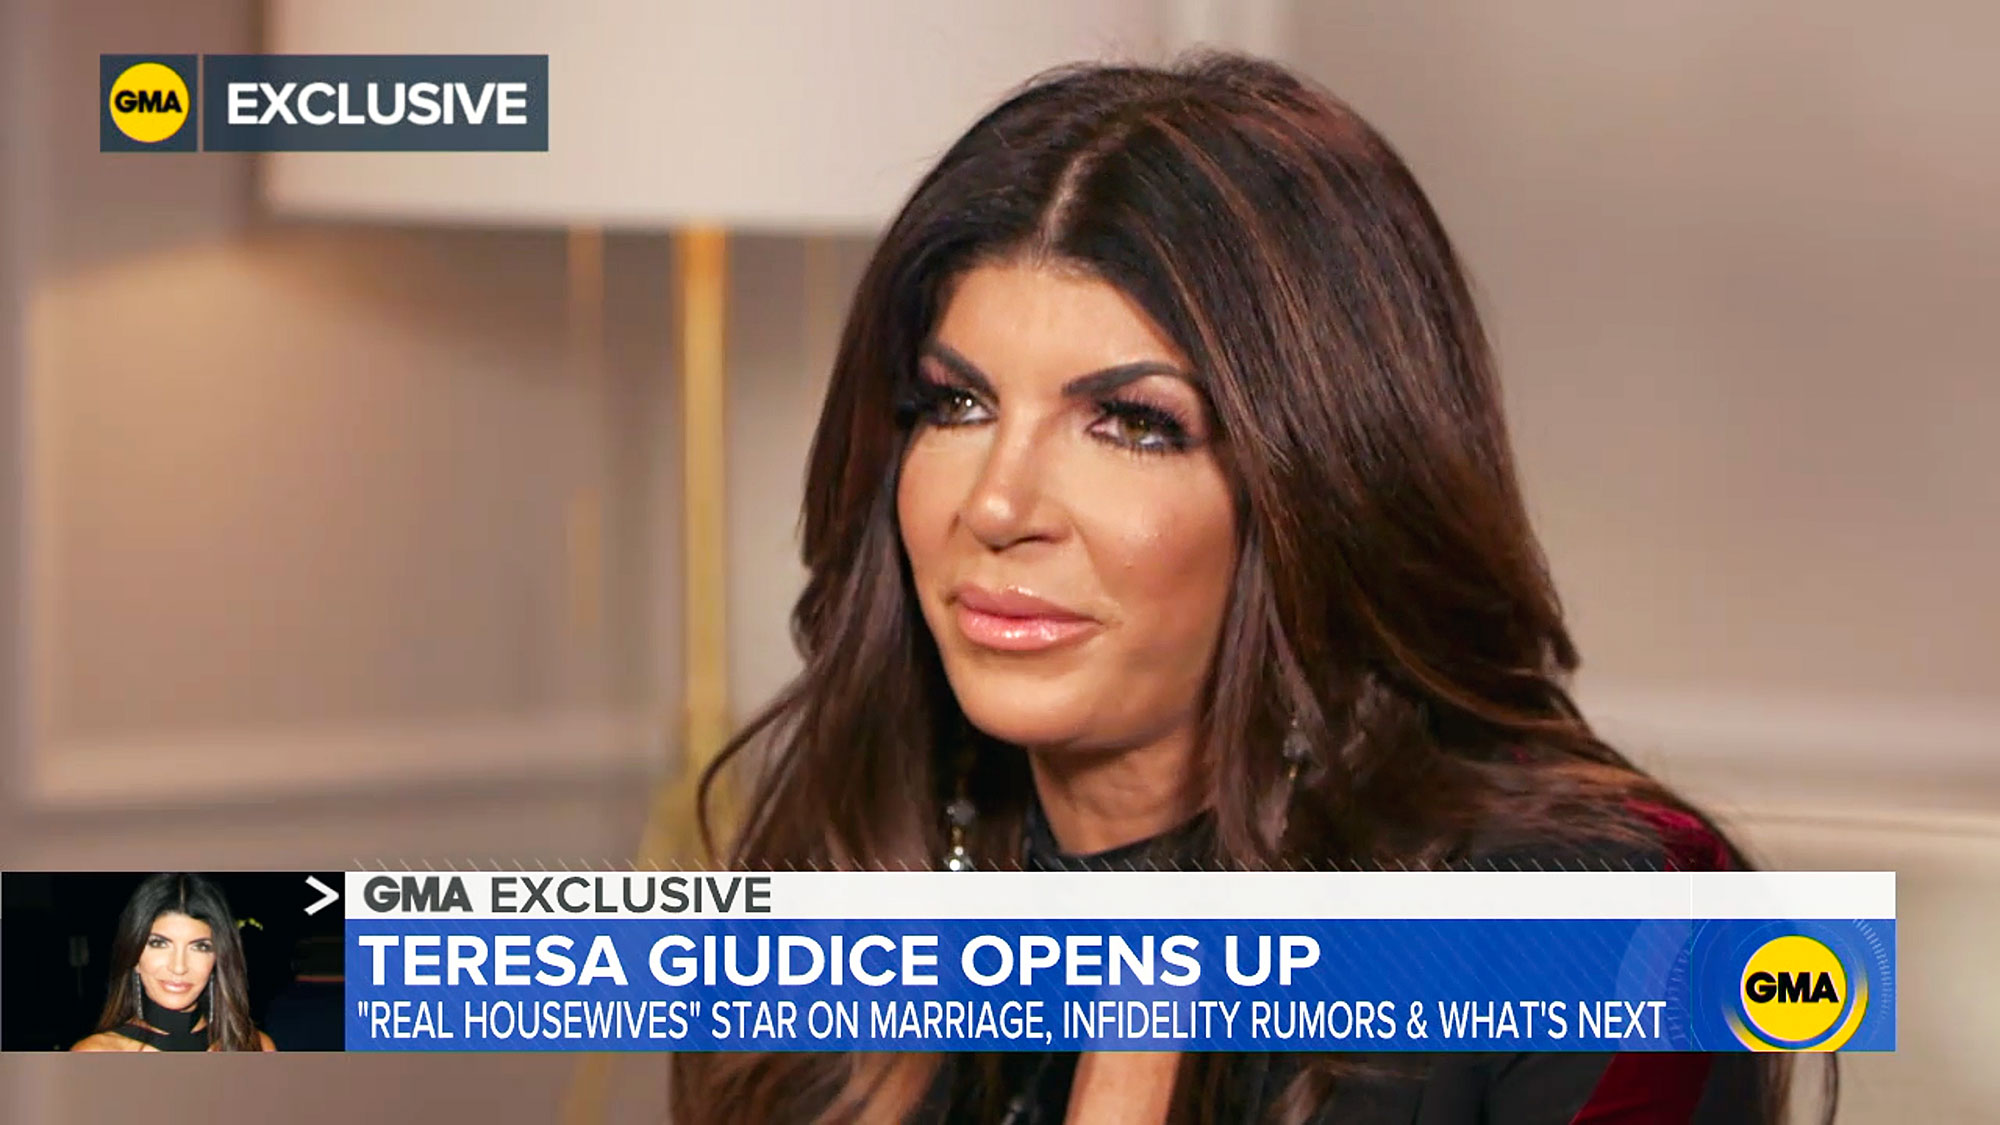 Teresa Giudice Says Future With Husband Joe Is Still Up in the Air After Italy